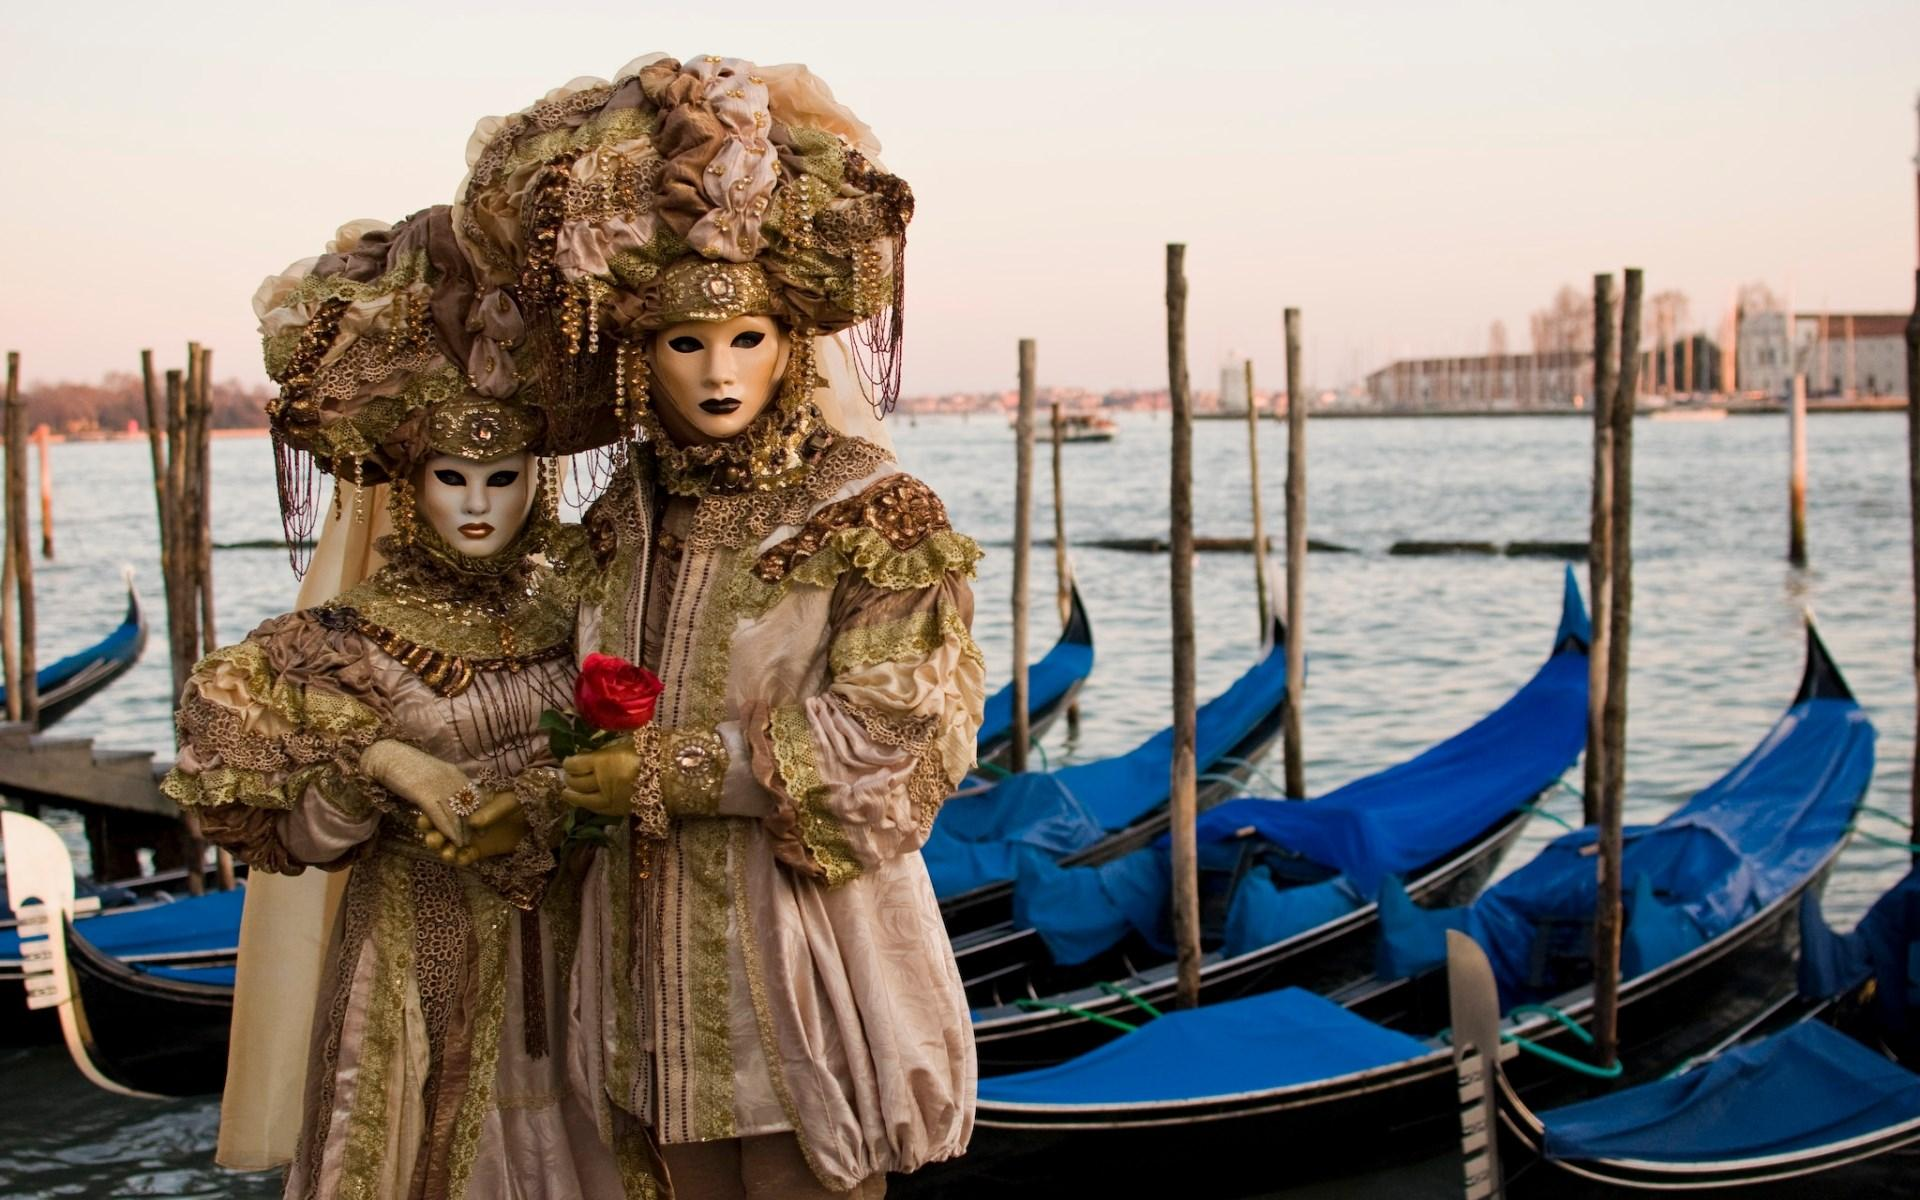 carnival of venice wallpapers pack 1080p hd, 1920x1200